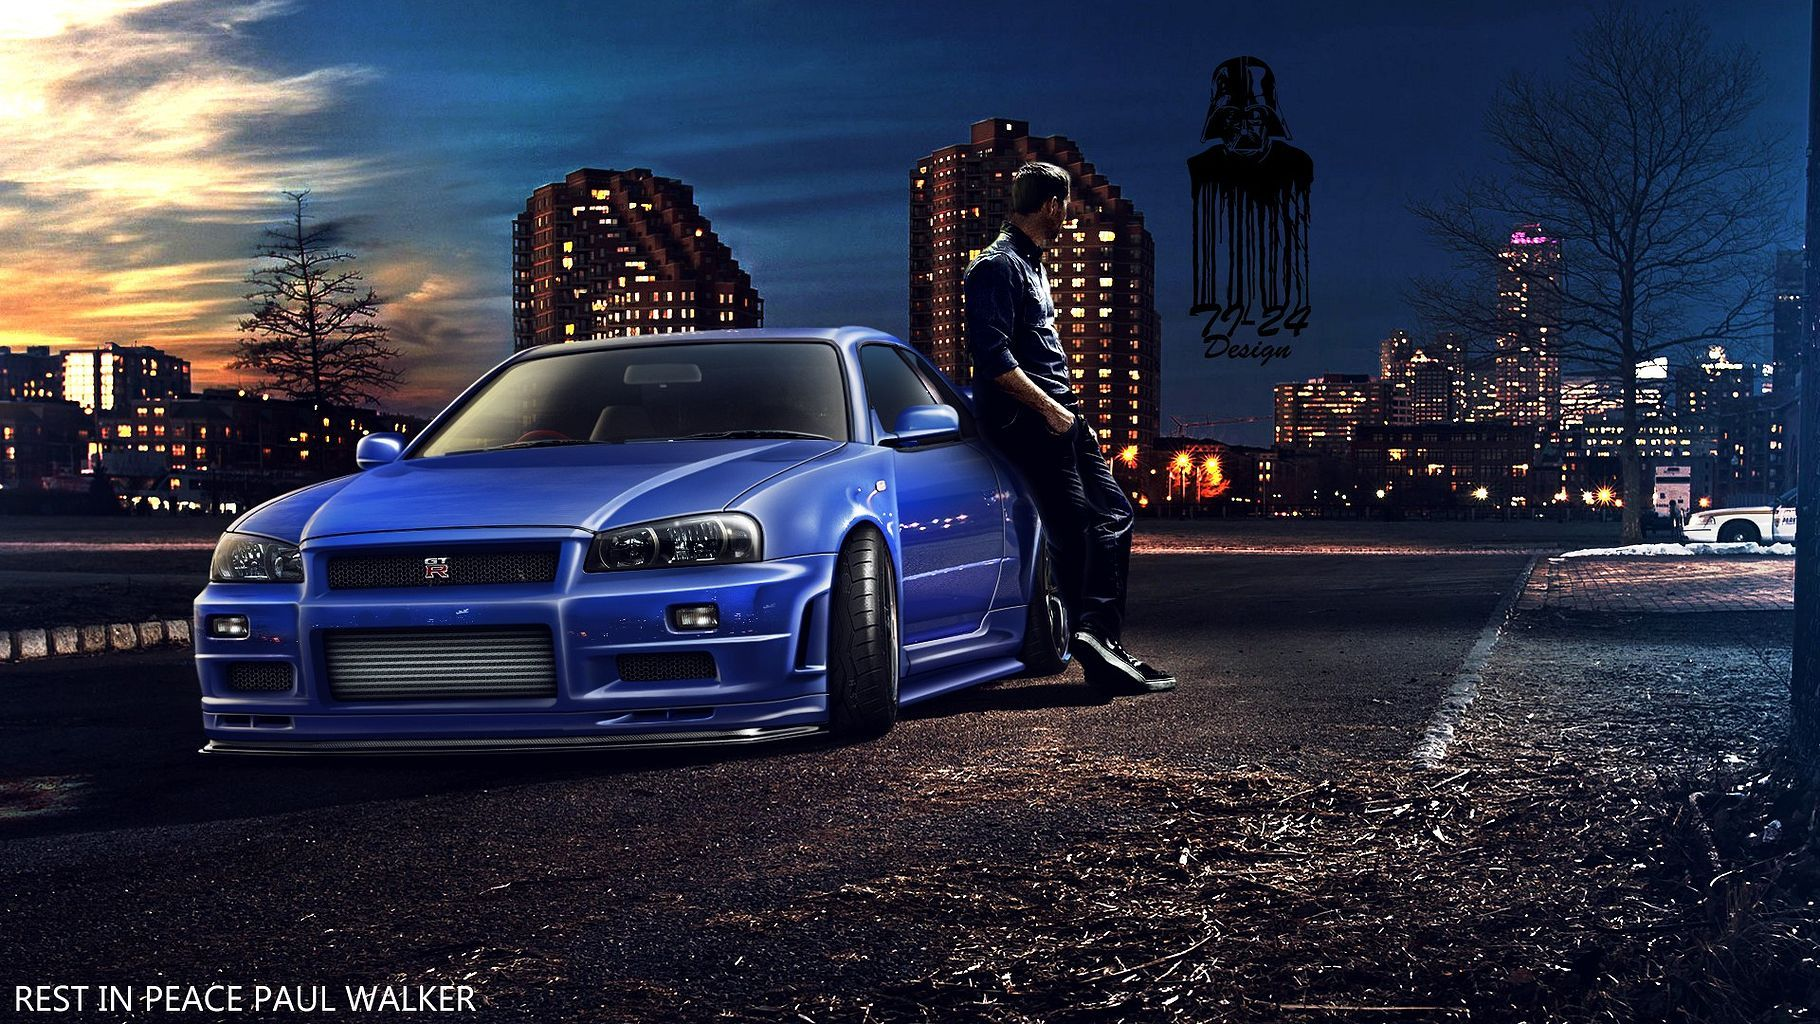 Nissan Skyline GTR R34 Fast And Furious Awesome